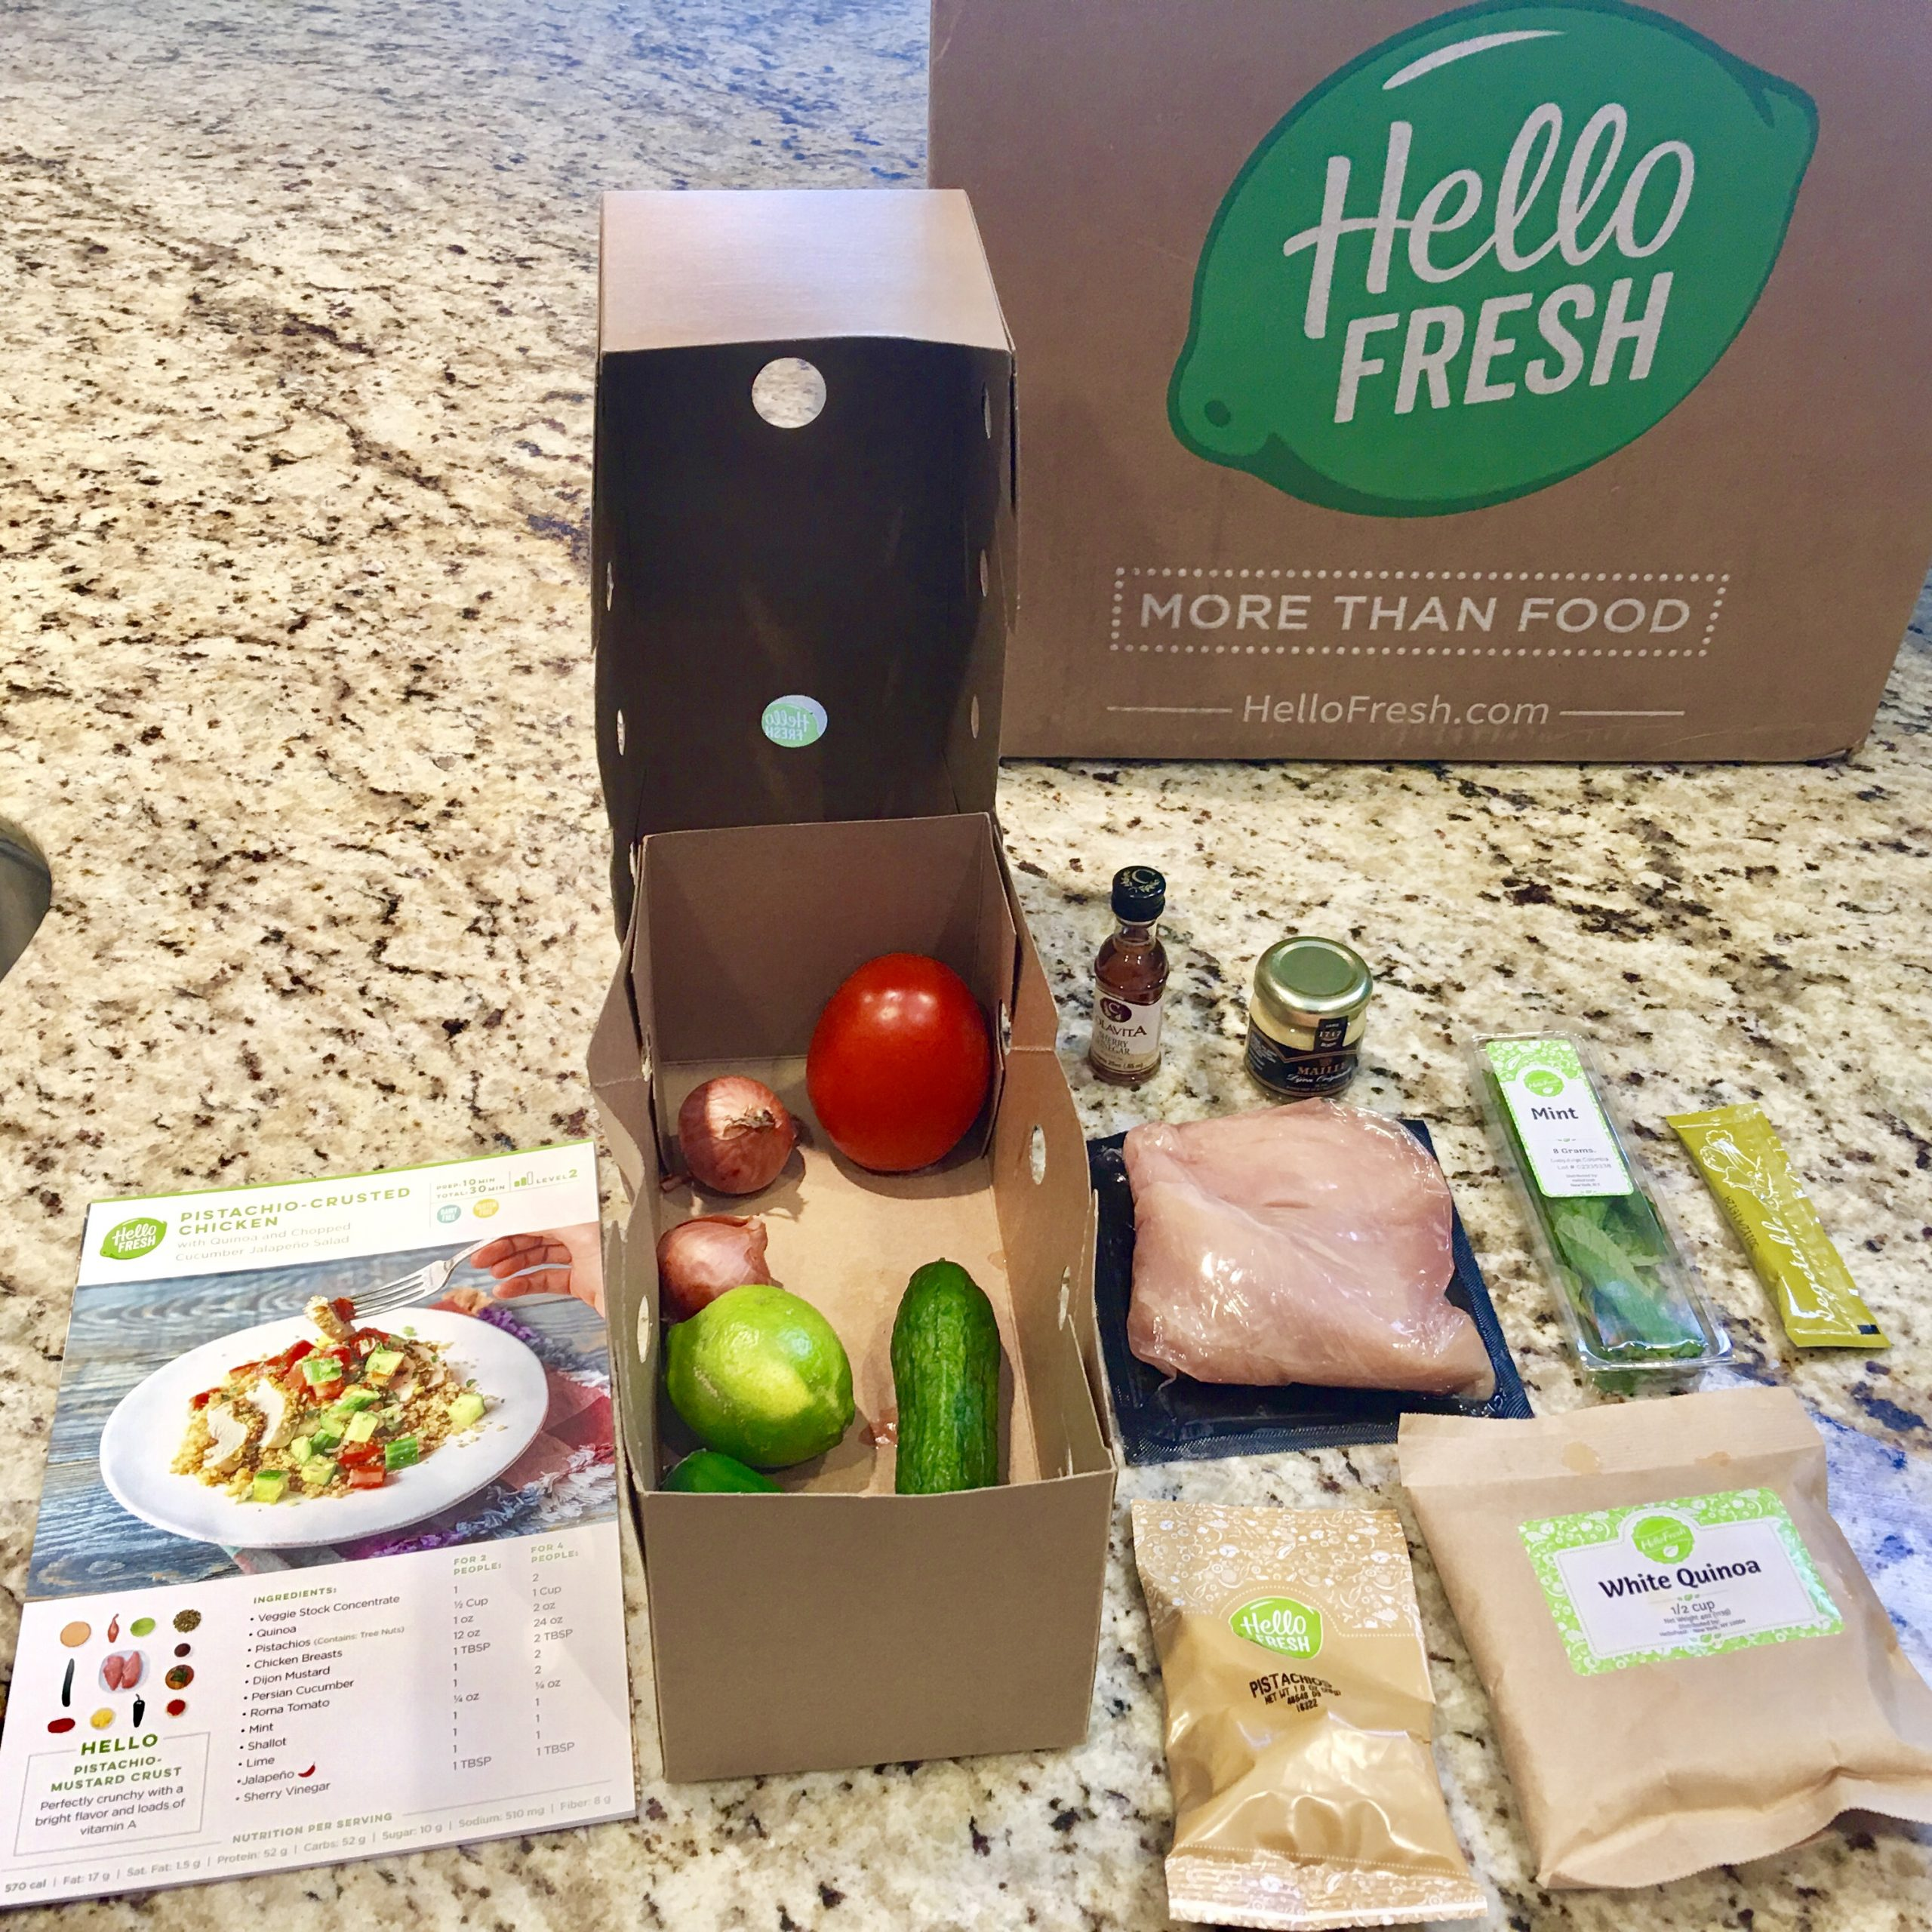 Save On Hellofresh  Meal Kit Delivery Service Voucher April